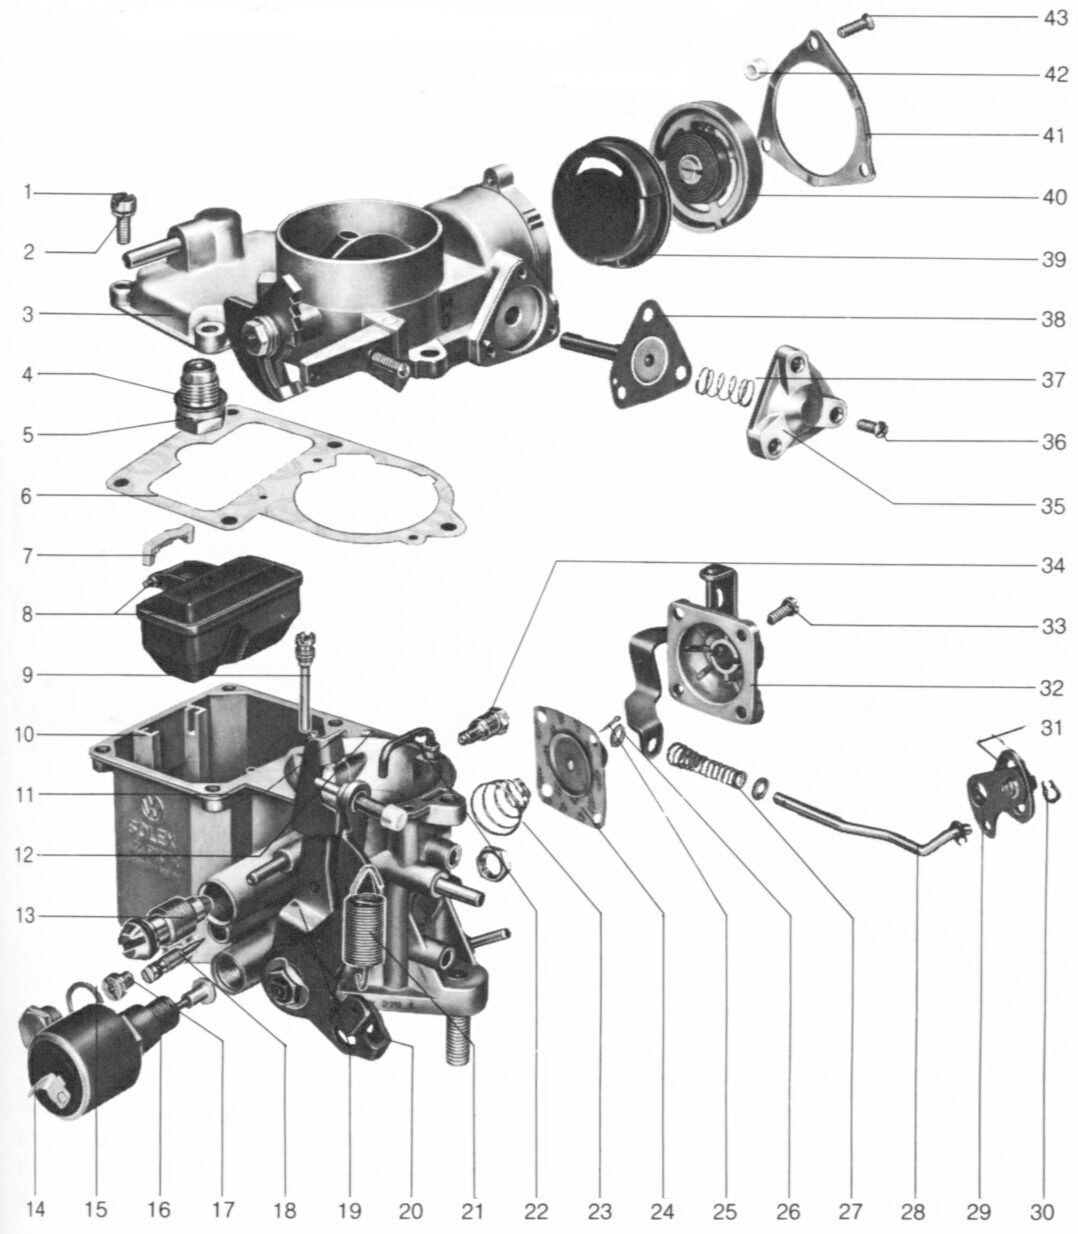 hight resolution of 34 pict 3 carburetor overhaul rh vw resource com vw beetle carburator vw beetle suspension diagram